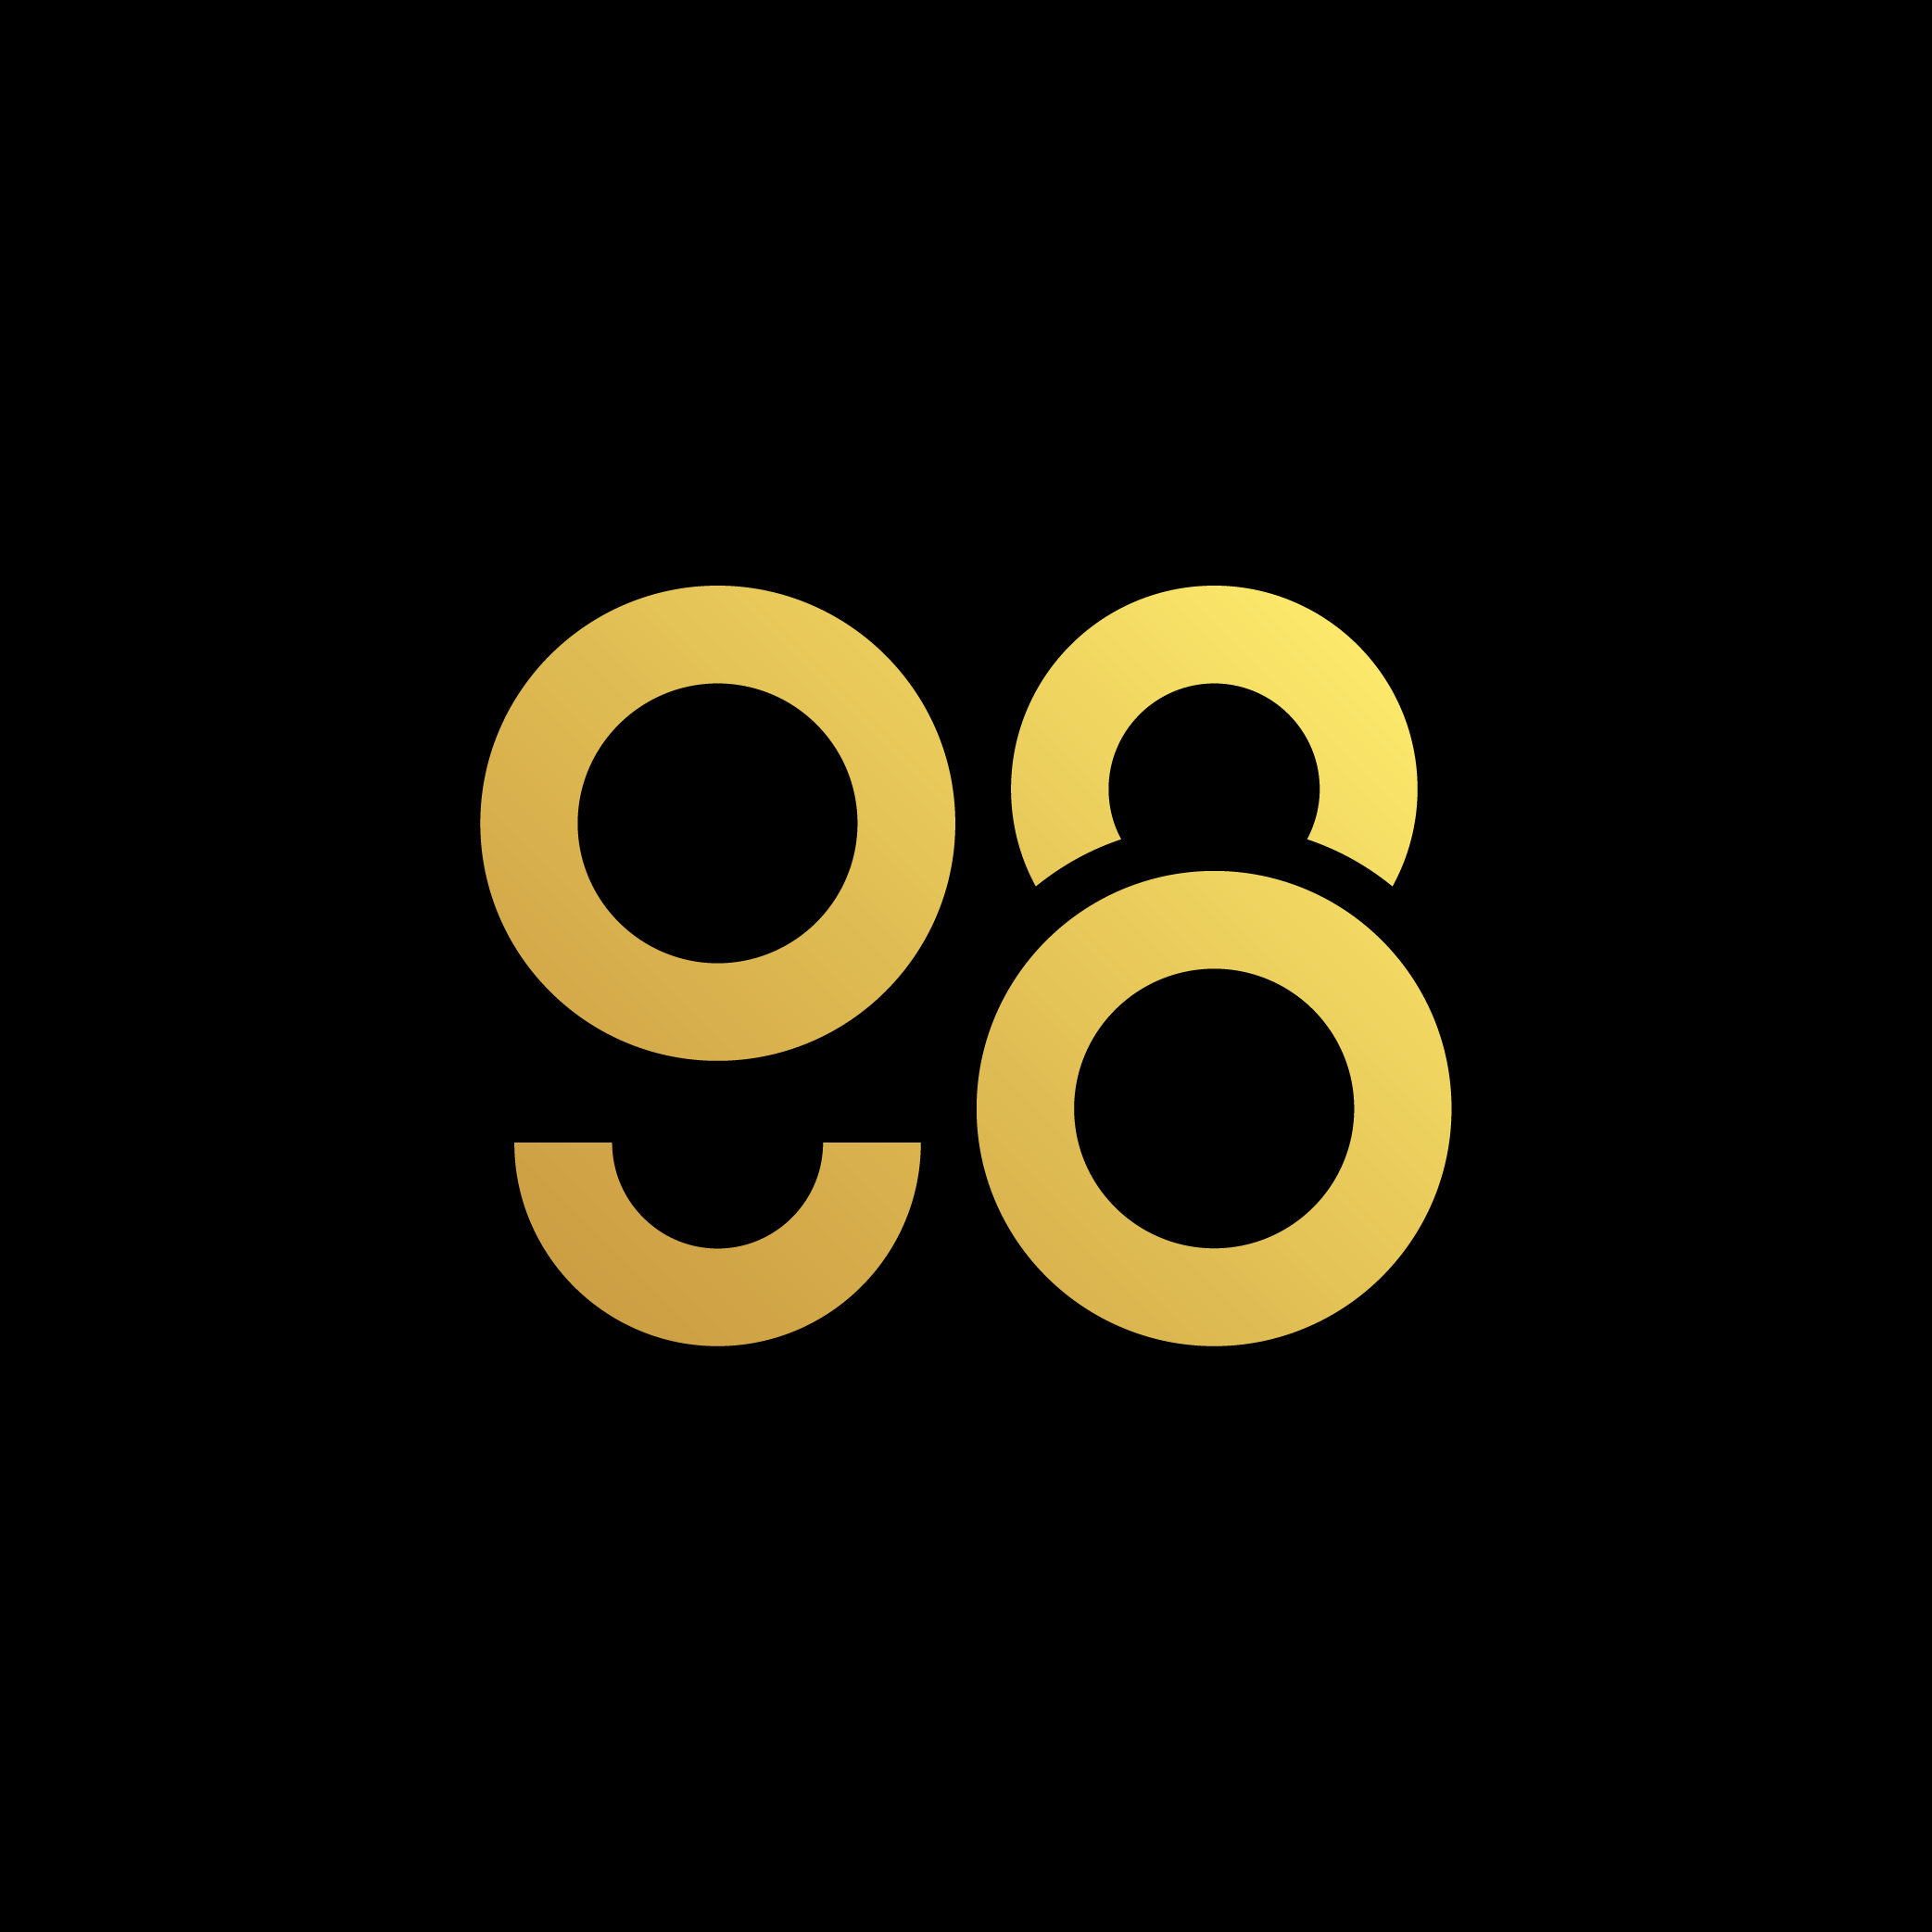 """{""""id"""":36,""""email"""":""""hi@coin98.ventures"""",""""username"""":""""coin98ventures"""",""""fullname"""":""""Coin98 Ventures"""",""""avatar"""":637,""""description"""":""""Investment arm of Coin98 Finance. Follow us on Twitter @Coin98Ventures"""",""""position"""":"""""""",""""MediaAvatar"""":{""""id"""":637,""""url"""":""""https://file.publish.vn/amberblocks/36/2021-05/avatar-1622201244131.png"""",""""title"""":""""Avatar-12.png"""",""""alt"""":"""""""",""""type"""":3,""""url_large"""":""""https://file.publish.vn/amberblocks/36/2021-05/large/avatar-1622201244131.png"""",""""url_medium"""":""""https://file.publish.vn/amberblocks/36/2021-05/medium/avatar-1622201244131.png"""",""""url_small"""":""""https://file.publish.vn/amberblocks/36/2021-05/small/avatar-1622201244131.png"""",""""url_raw"""":""""https://file.publish.vn/amberblocks/36/2021-05/raw/avatar-1622201244131.png""""},""""createdAt"""":""""2021-01-11T09:21:15.000Z"""",""""updatedAt"""":""""2021-01-11T09:21:15.460Z""""}"""